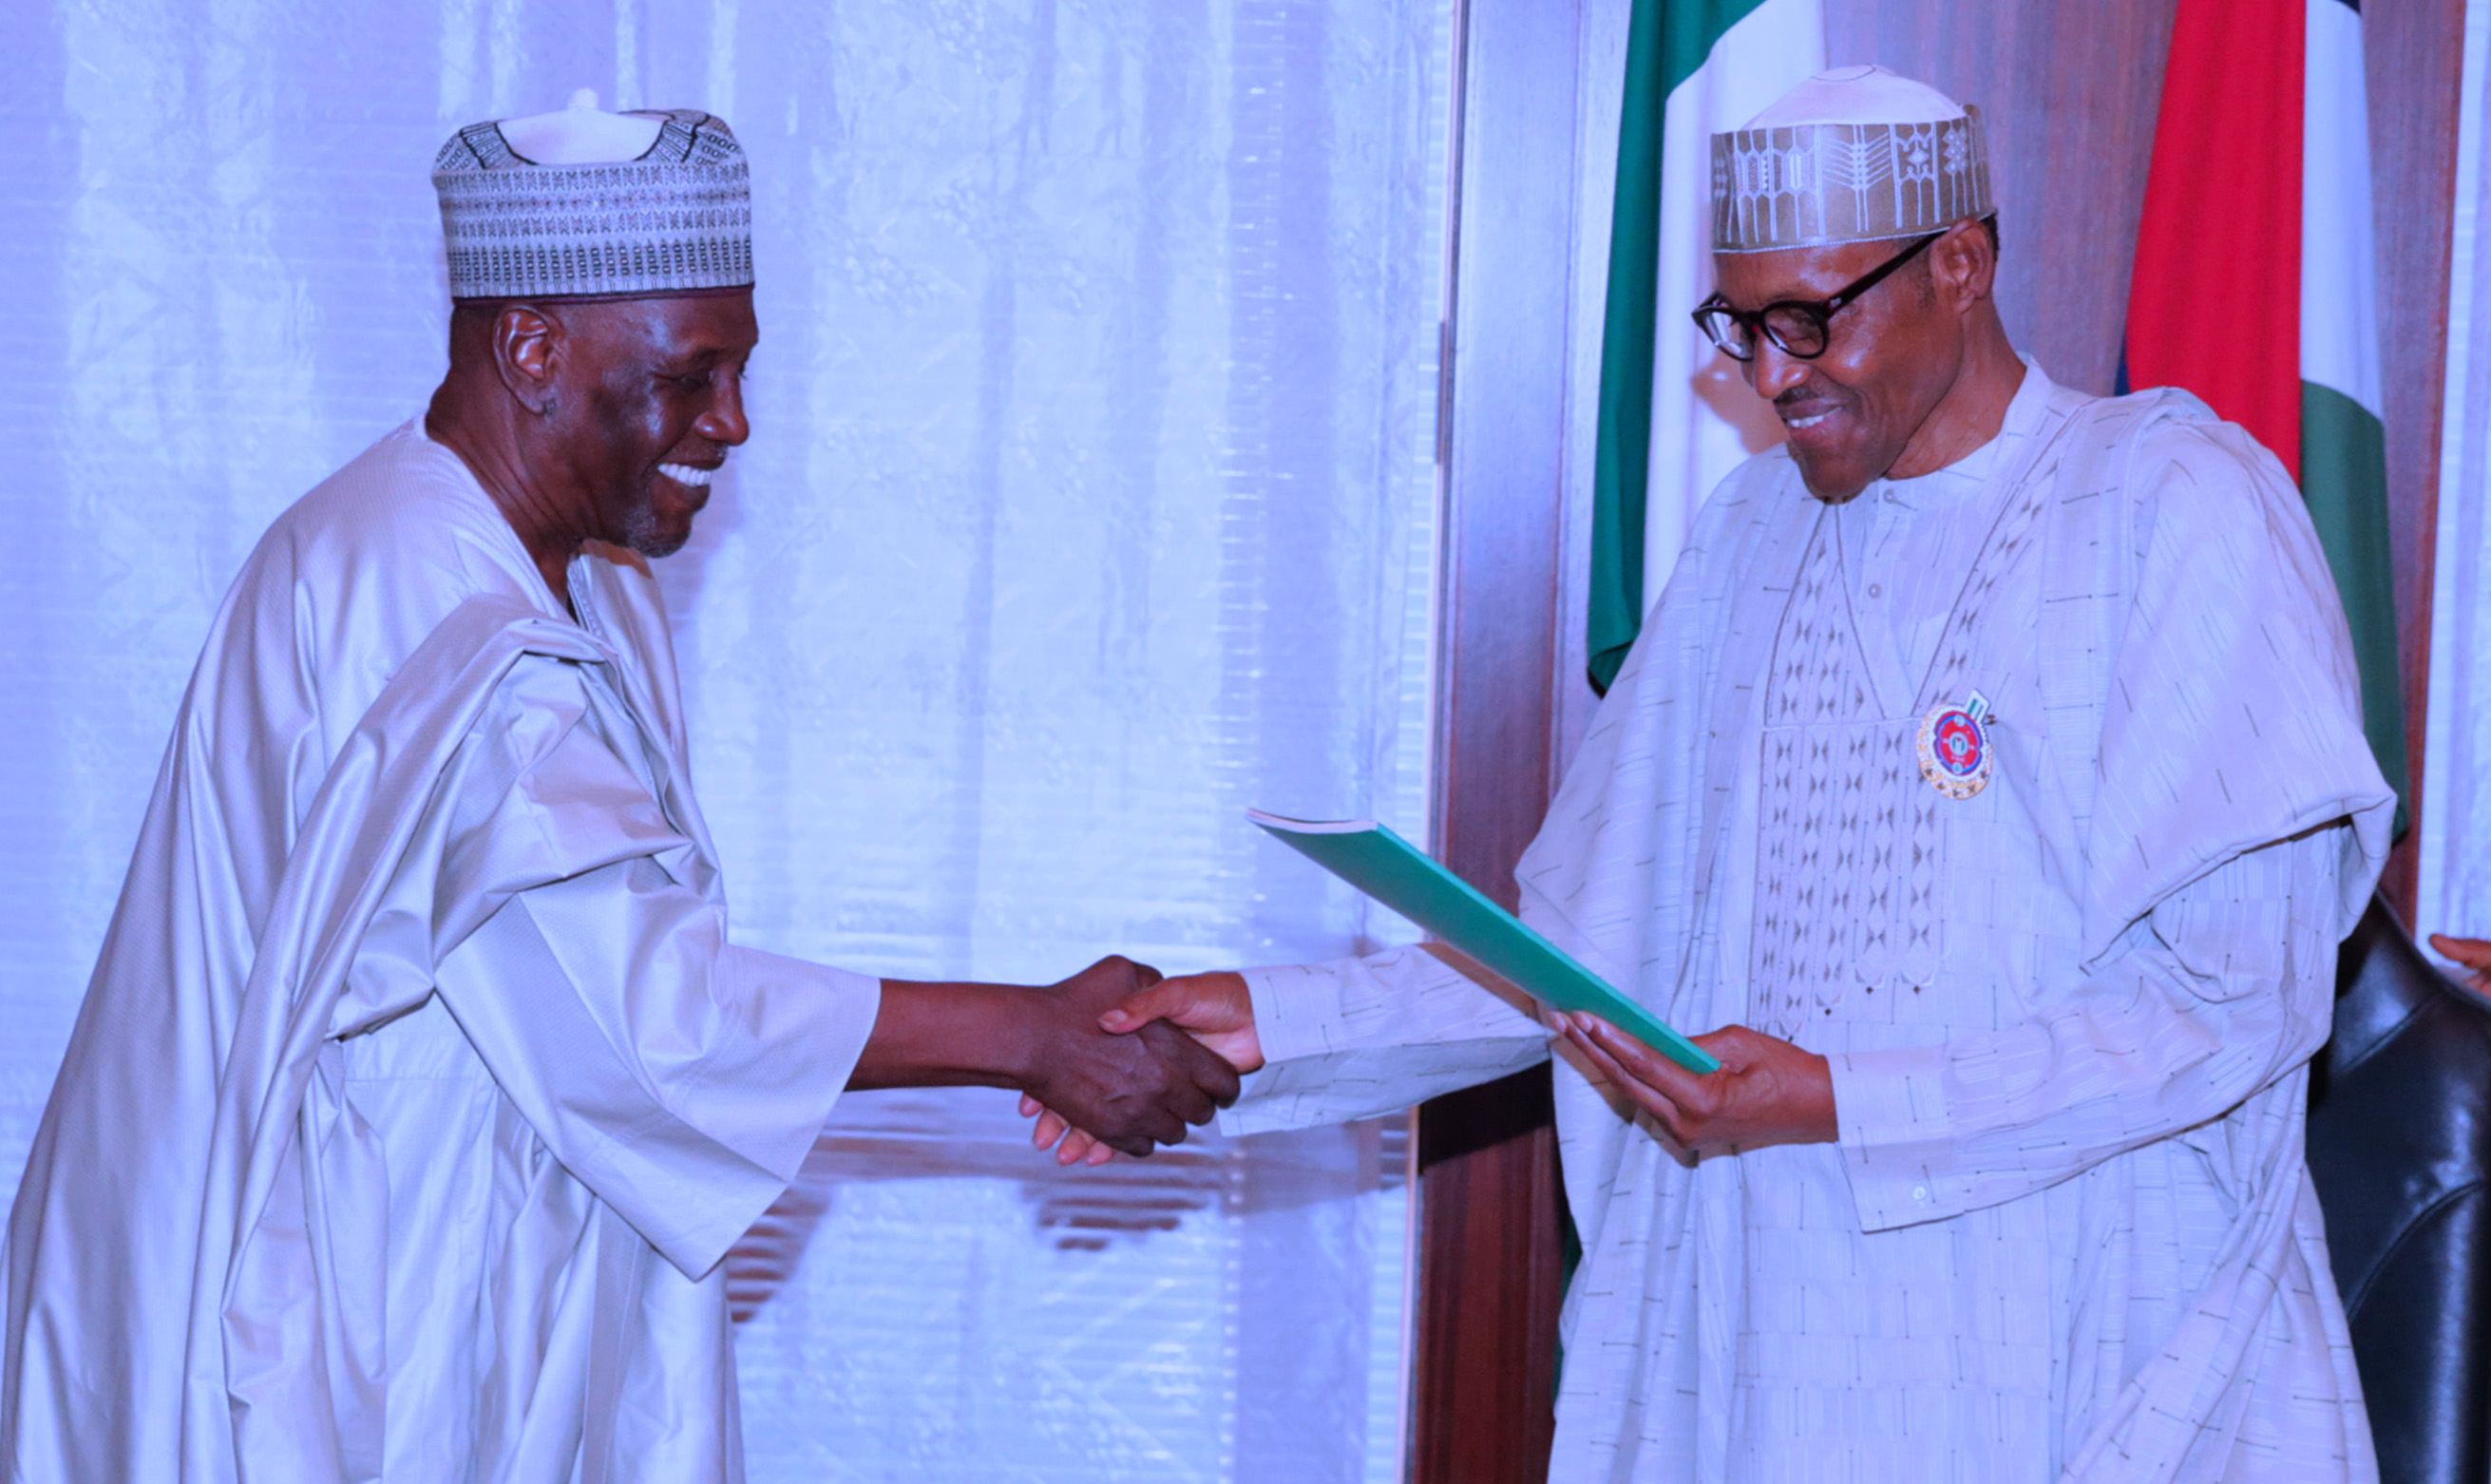 PRESIDENT BUHARI RECEIVES PANEL REPORT ON NIA 1B. President Muhammadu Buhari receives the panel report from the Chairman of the Panel, Ambassador Babagana Kingibe during the presentation of report of the Presidential Review panel on National Intelligence Agency (NIA) at the State House in Abuja. PHOTO; SUNDAY AGHAEZE. DEC 19 2017